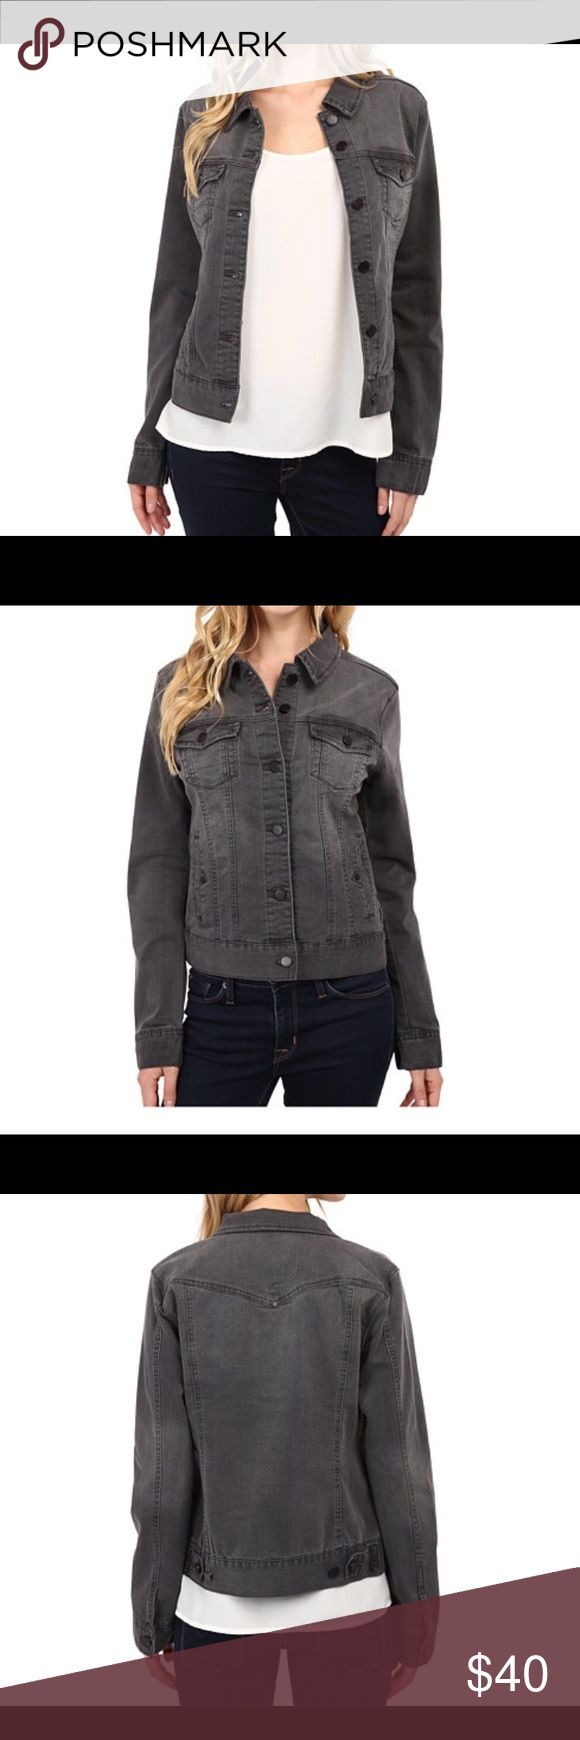 Liverpool grey denim jacket Worn once! Liverpool grey jean jacket. Pockets and falls at the hips. Size small but would also fit a medium Liverpool Jeans Company Jackets & Coats Jean Jackets